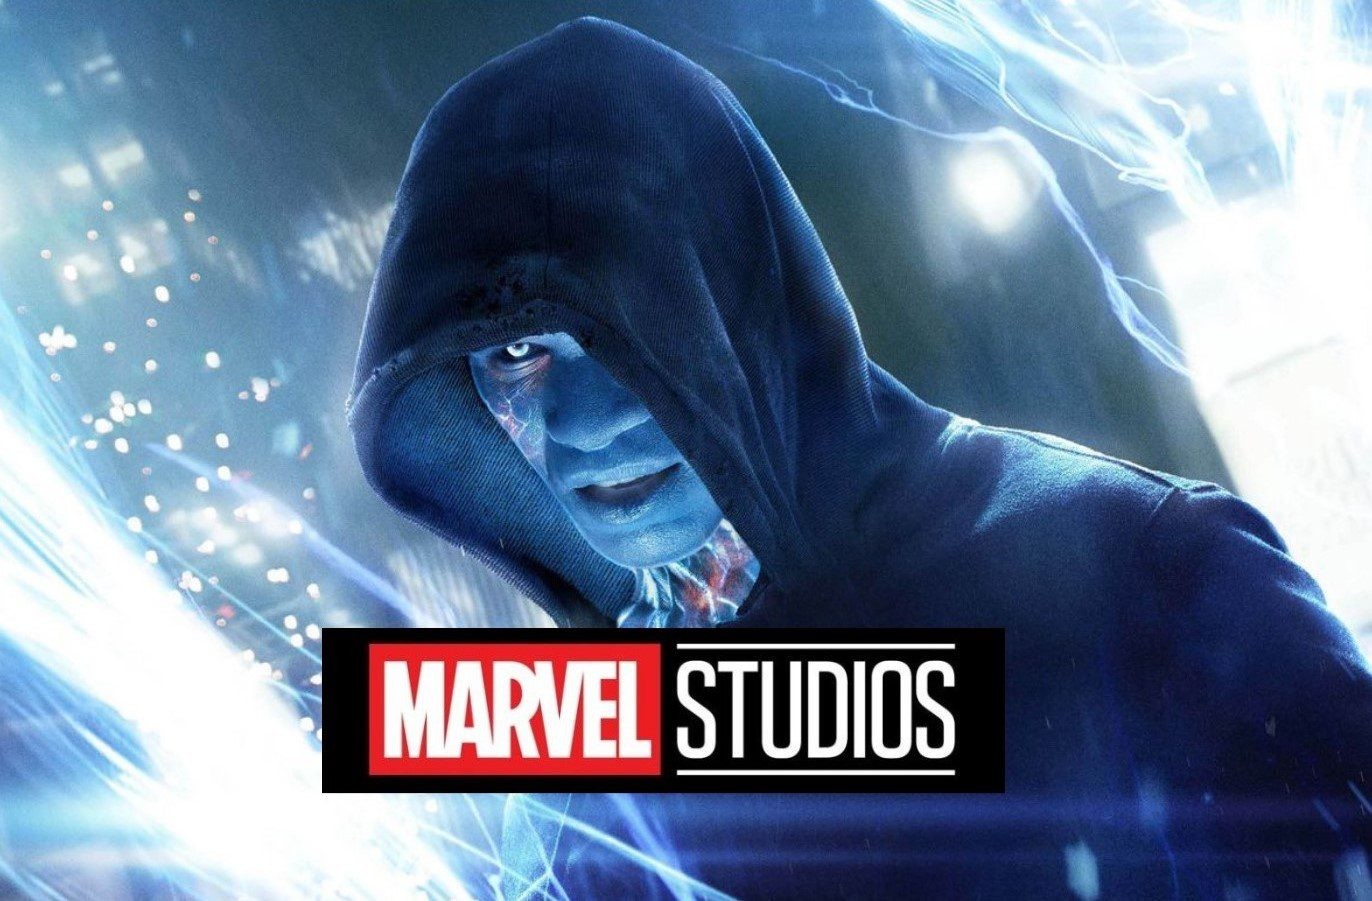 Jamie Foxx to return as Electro in the MCU's Spider-Man 3